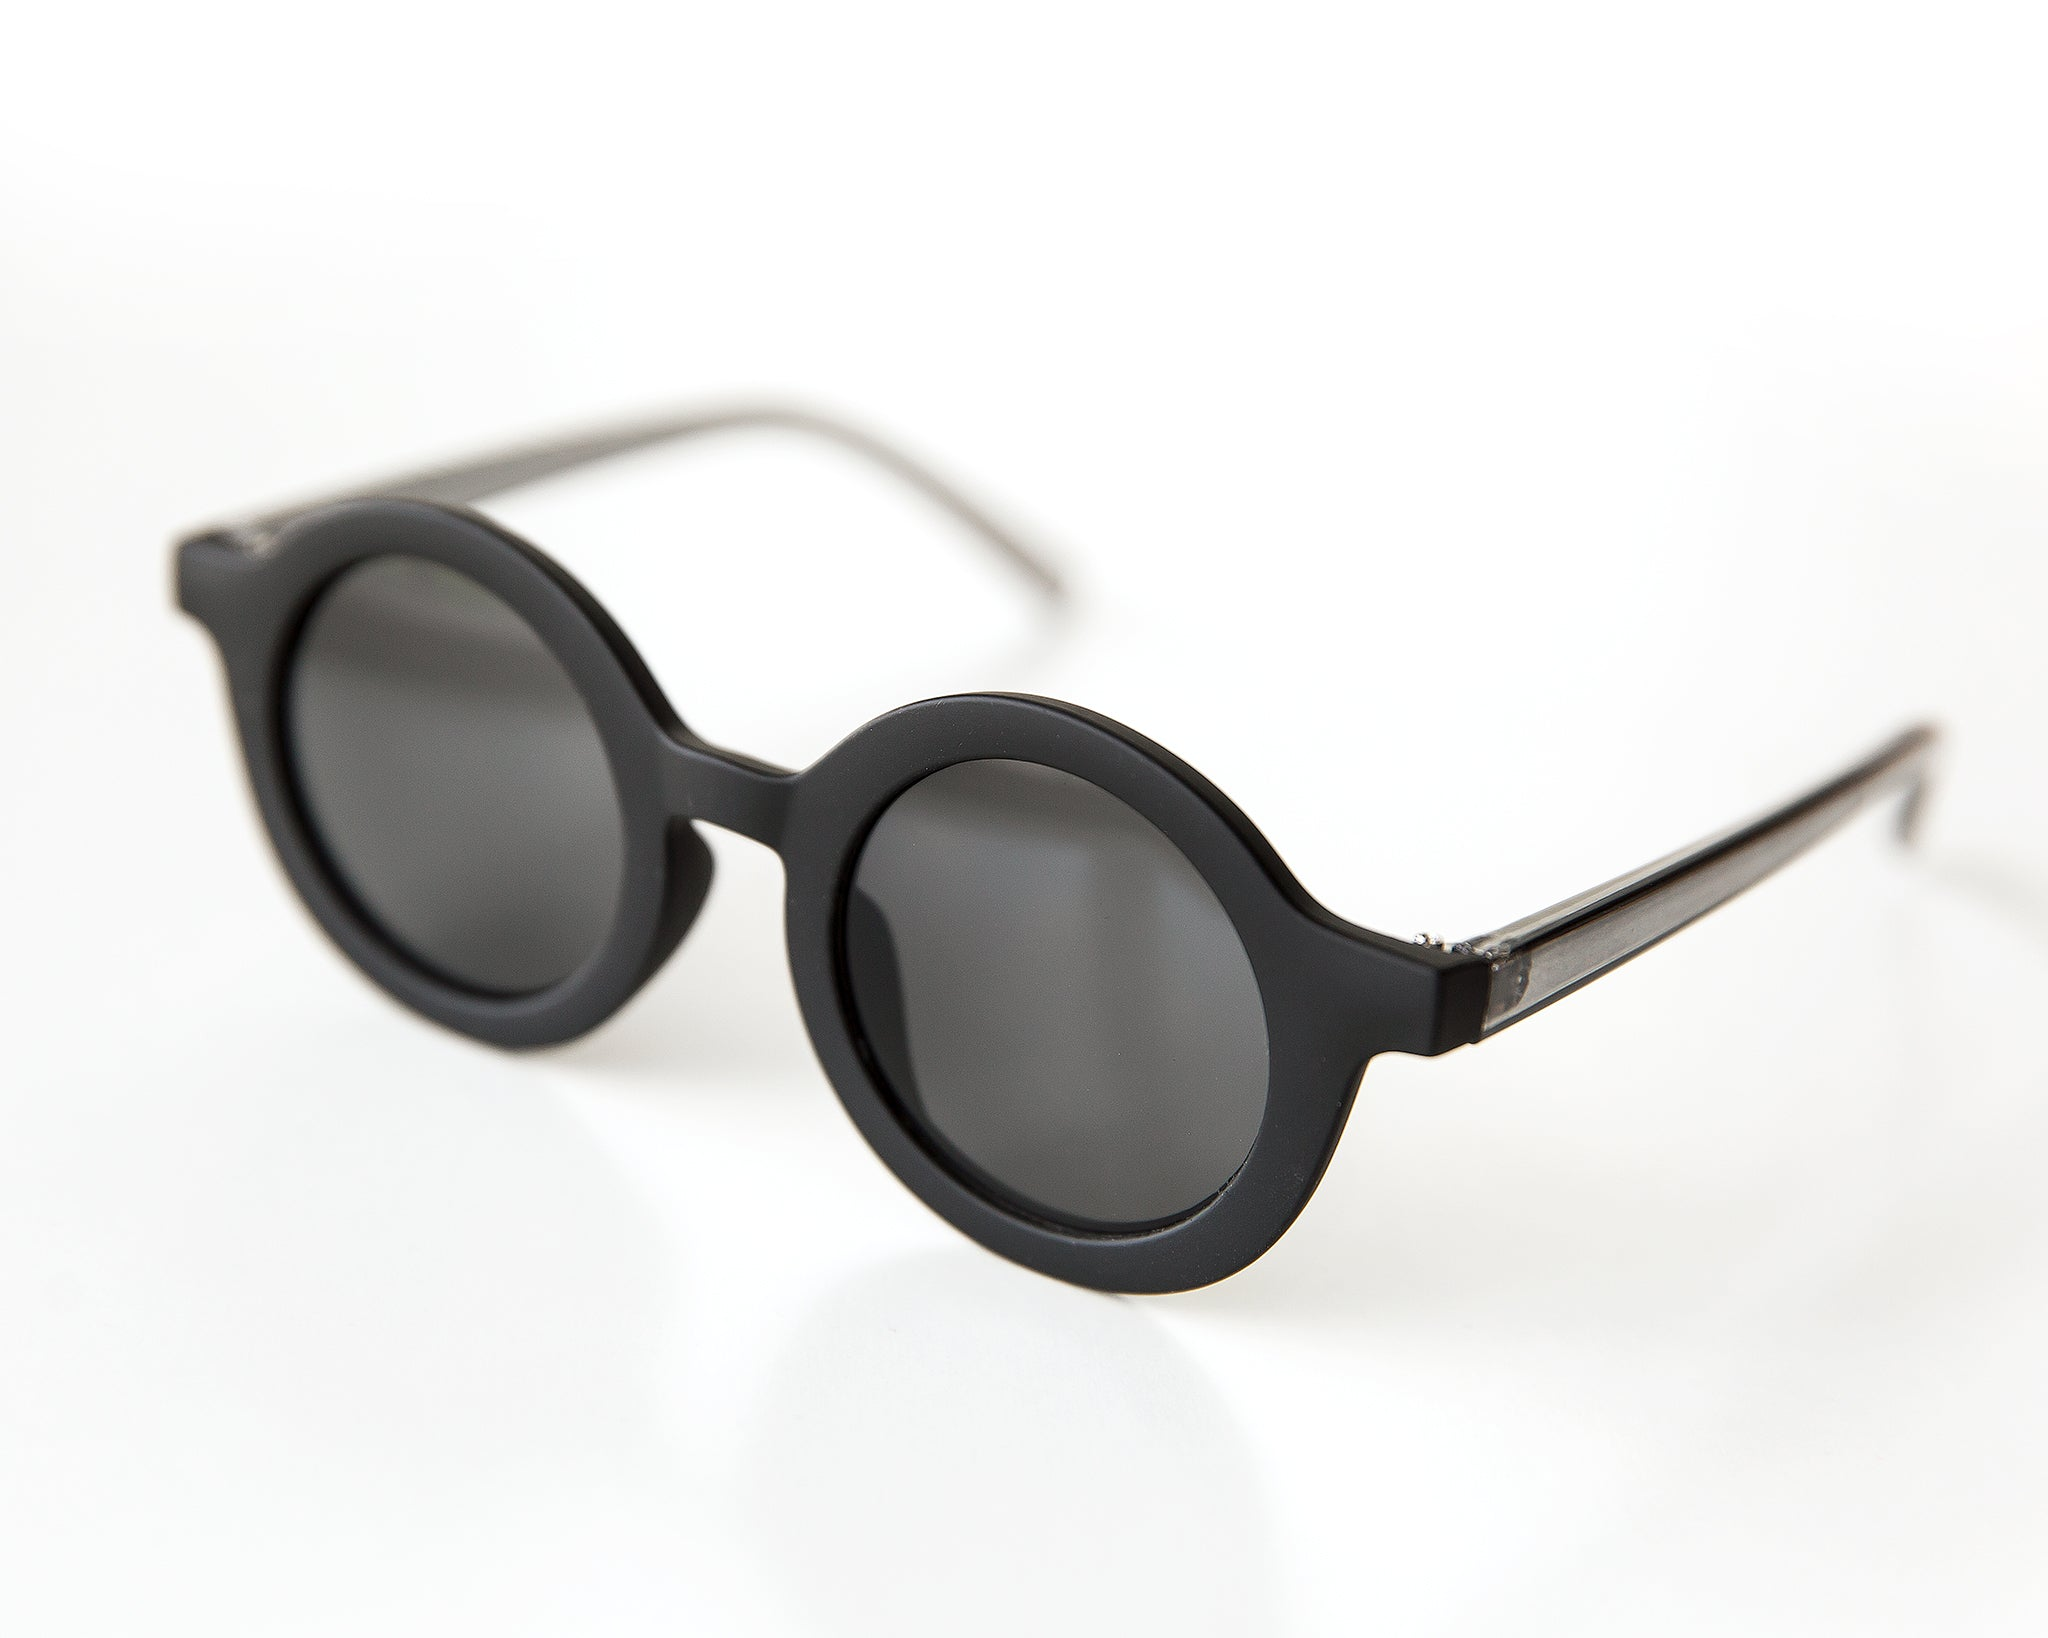 Rad Sunnies in Black - Reverie Threads